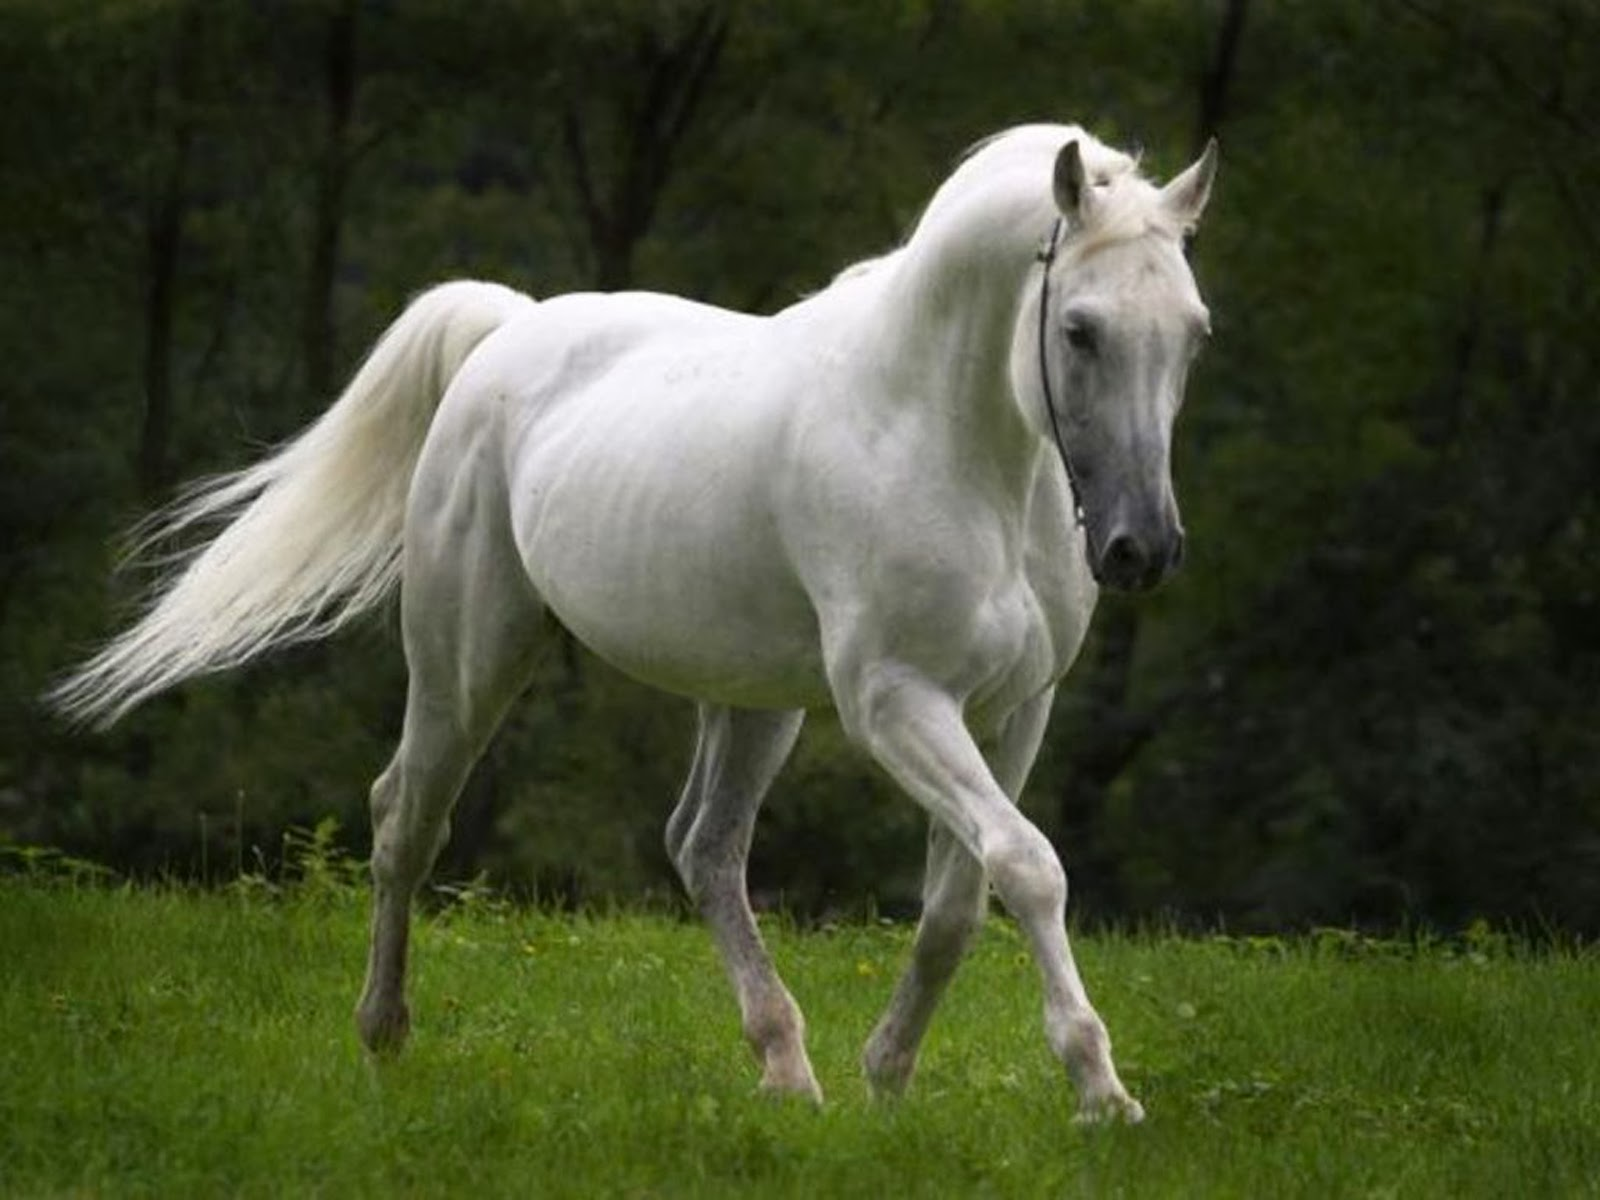 Wildlife hd wallpapers beautiful horses hd wallpapers 2014 for Wallpaper hd mare